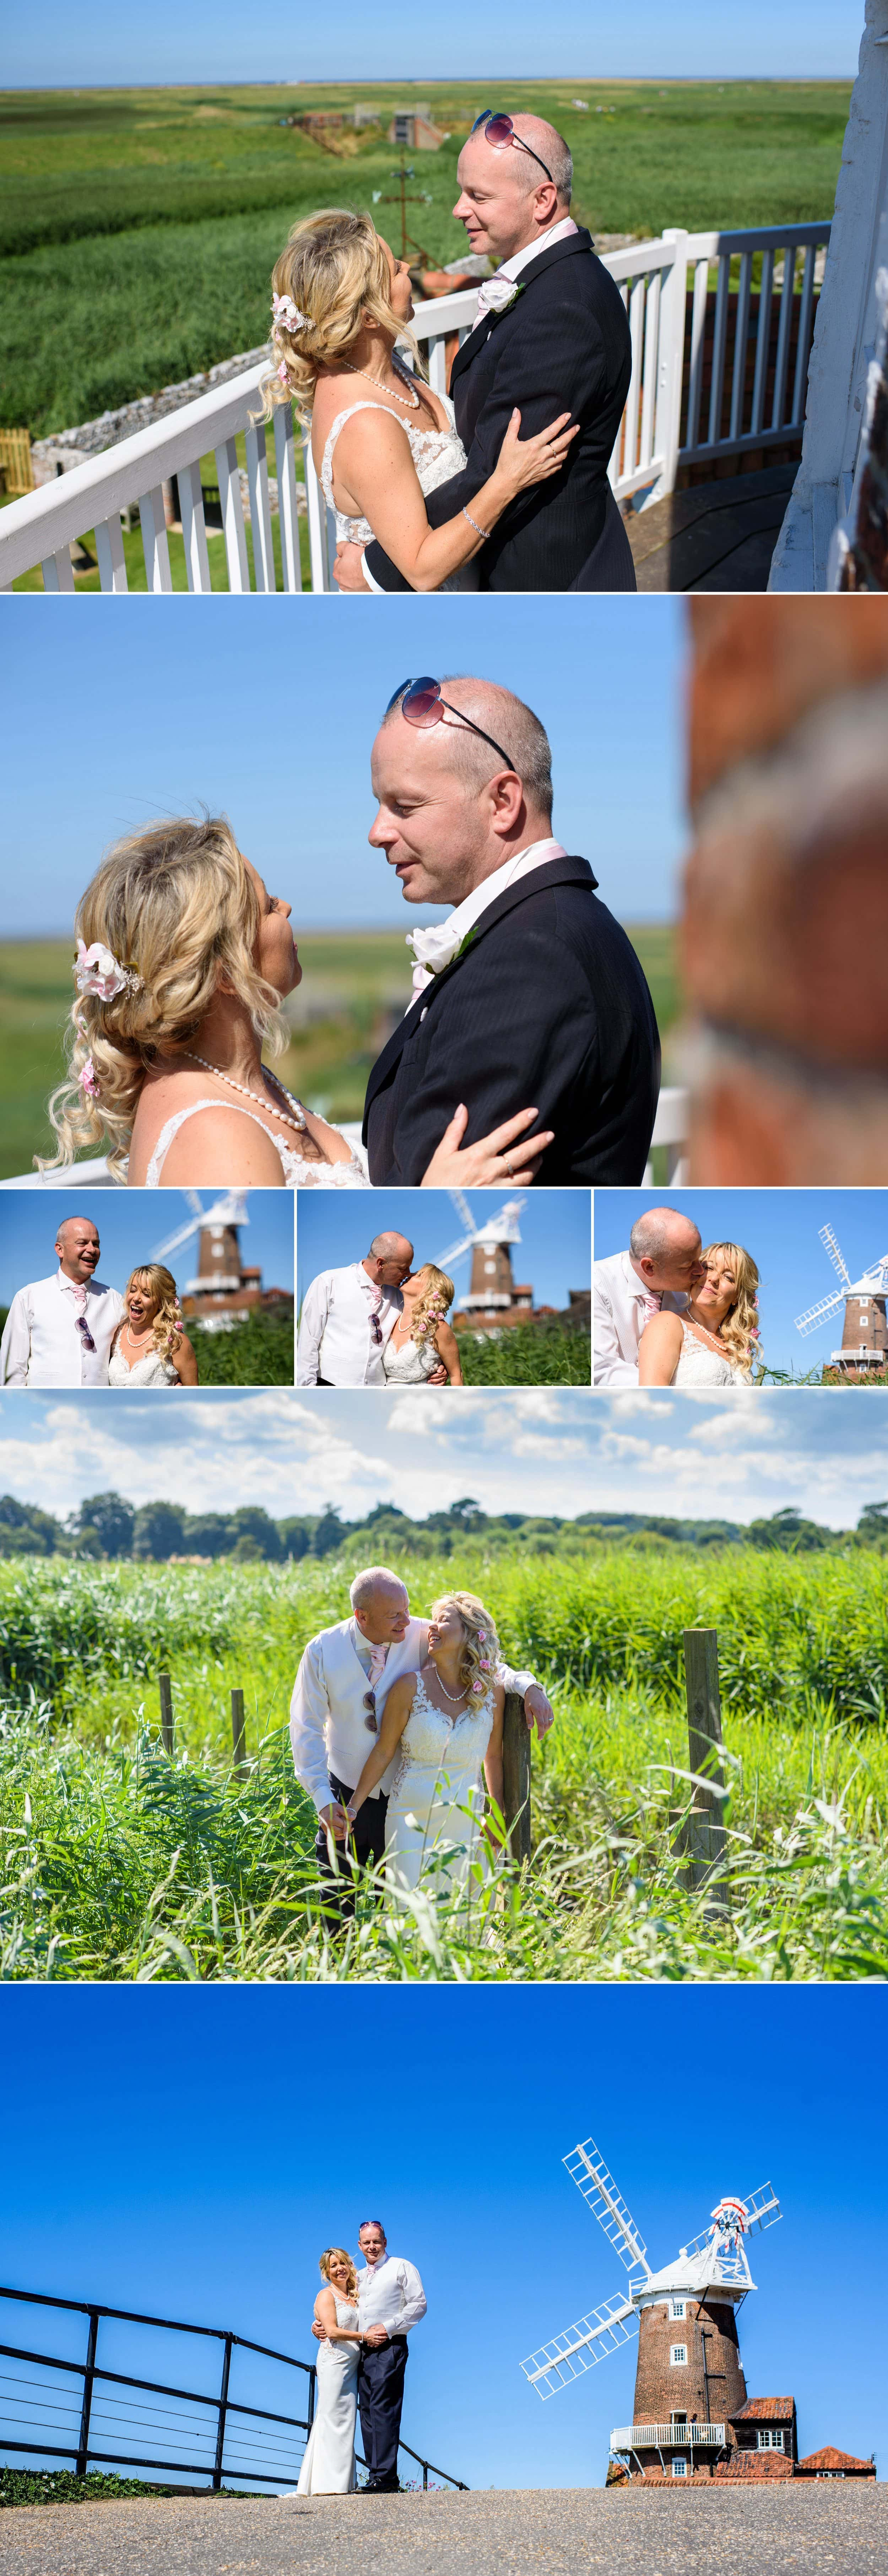 cley_windmill_norfolk_wedding_photography-12